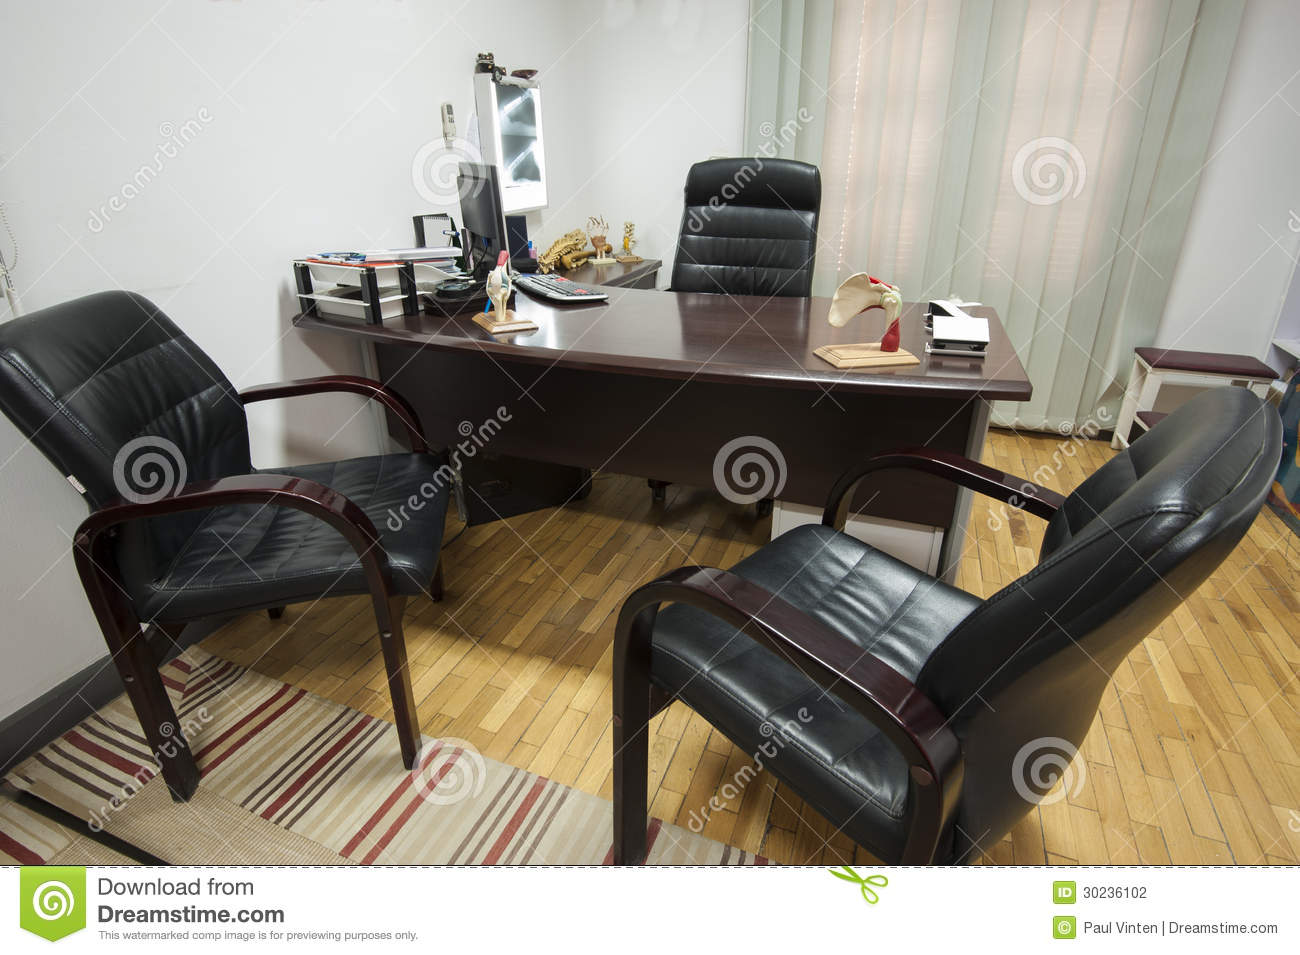 office chairs unlimited chair design for doctors consultation room stock photography - image: 30236102